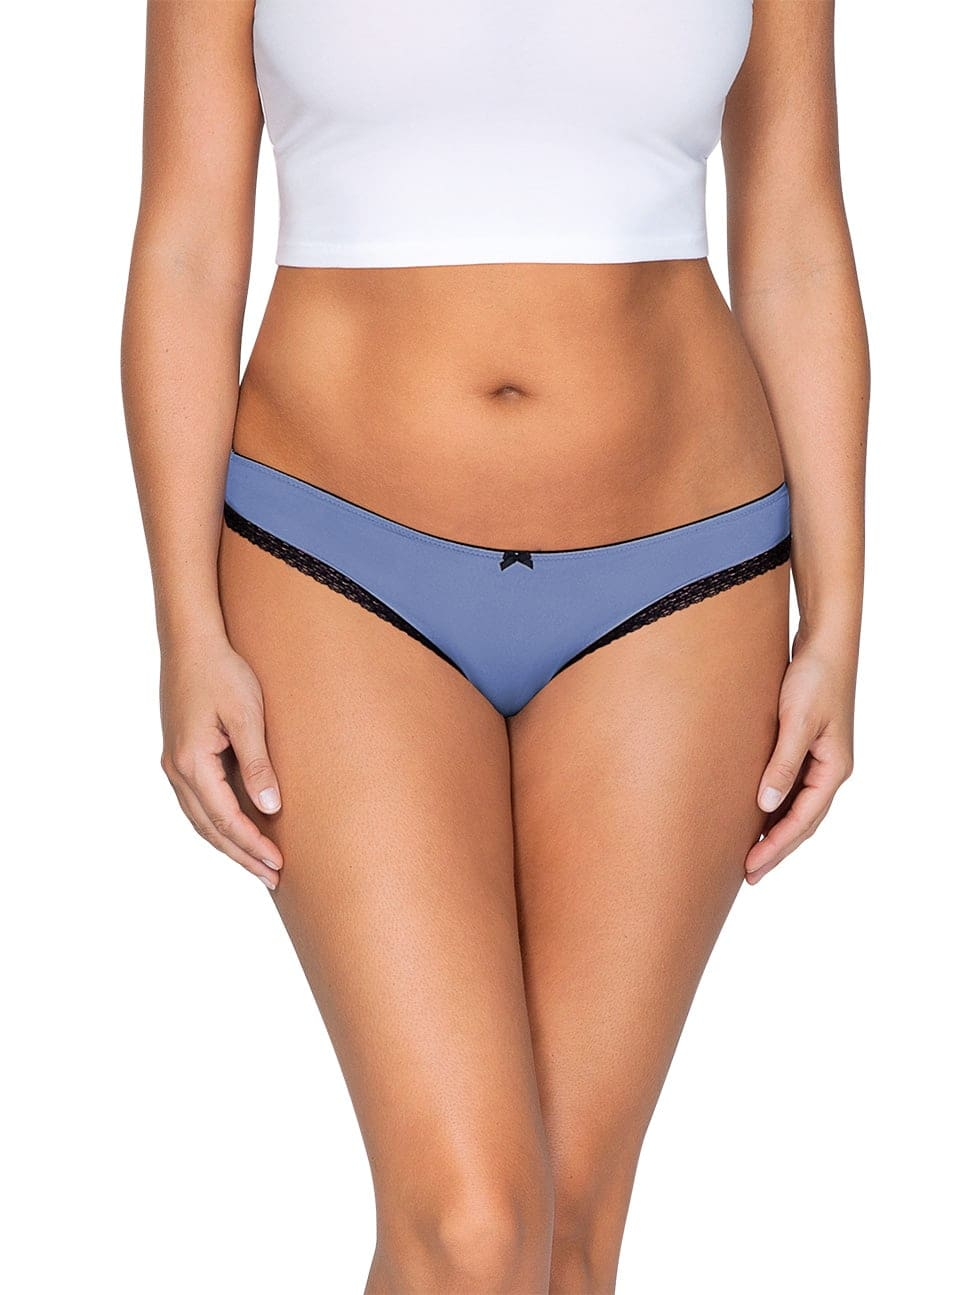 ParfaitPantyThong PP401 C SilverBlueFront main - So Lovely Thong Silver Blue PP401